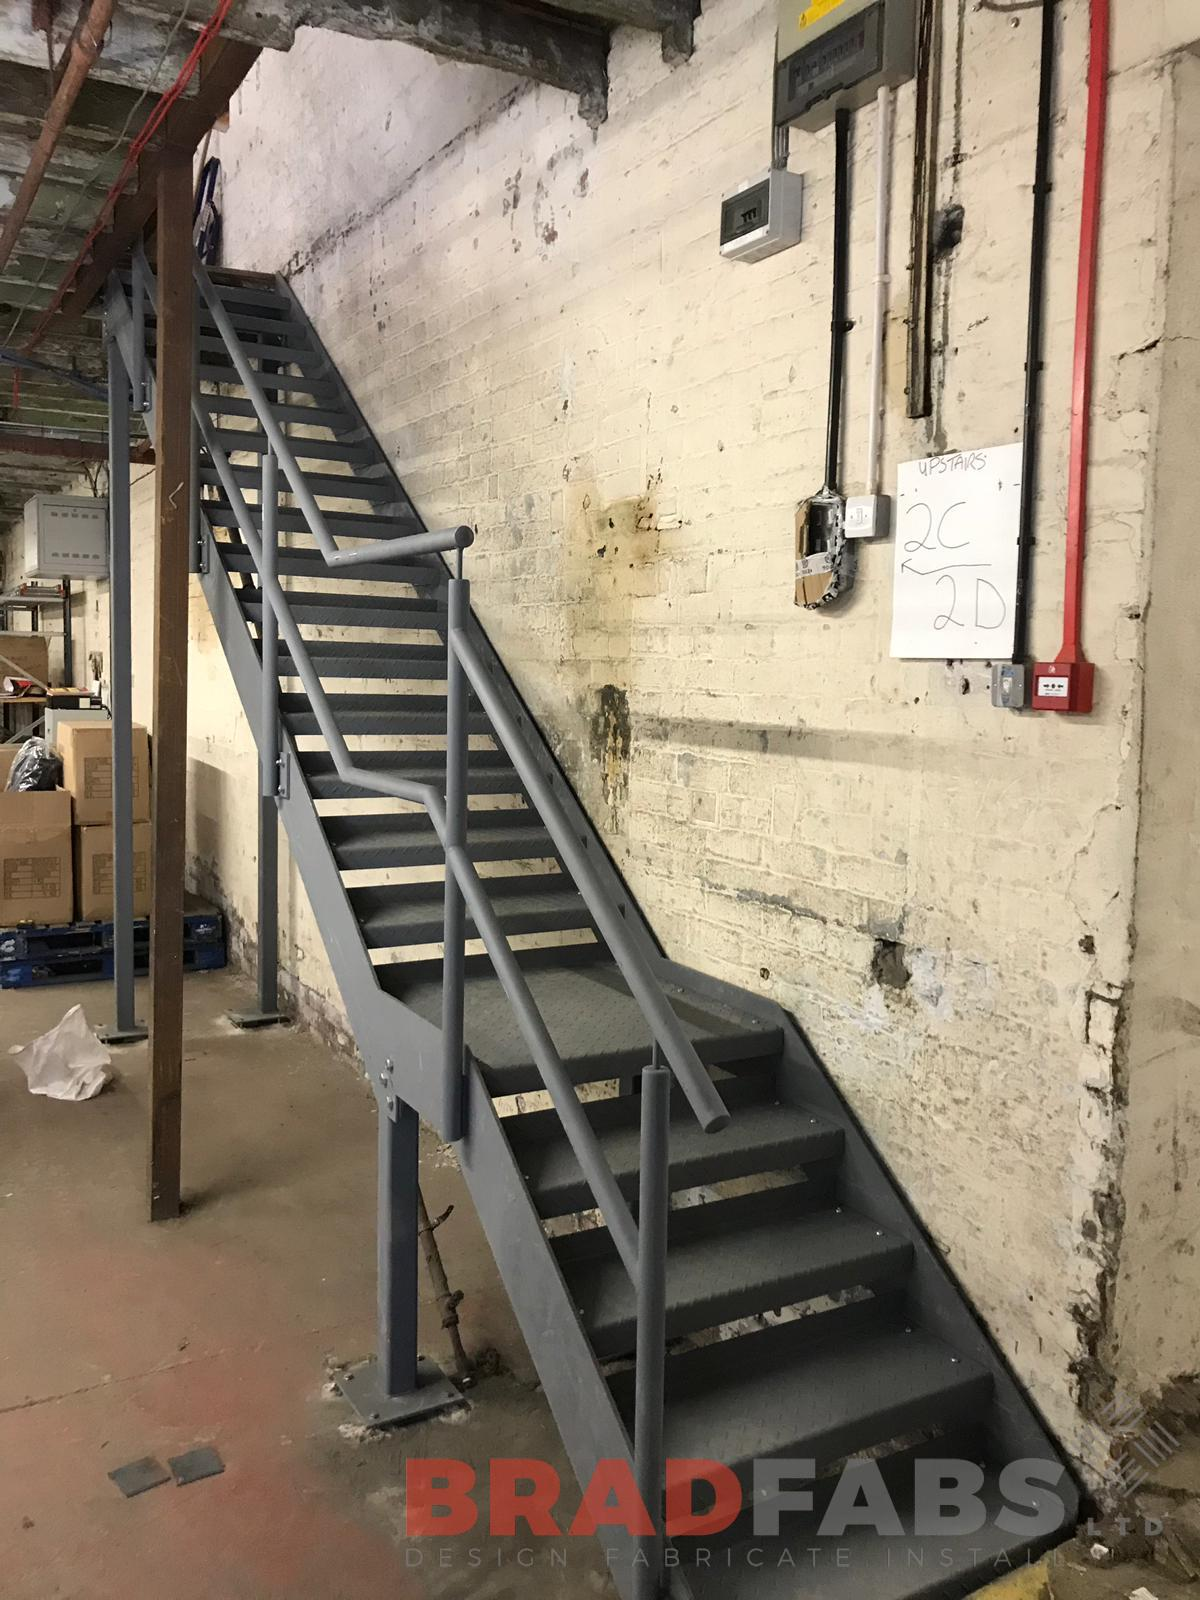 Straight staircase mild steel and powder coated by Bradfabs